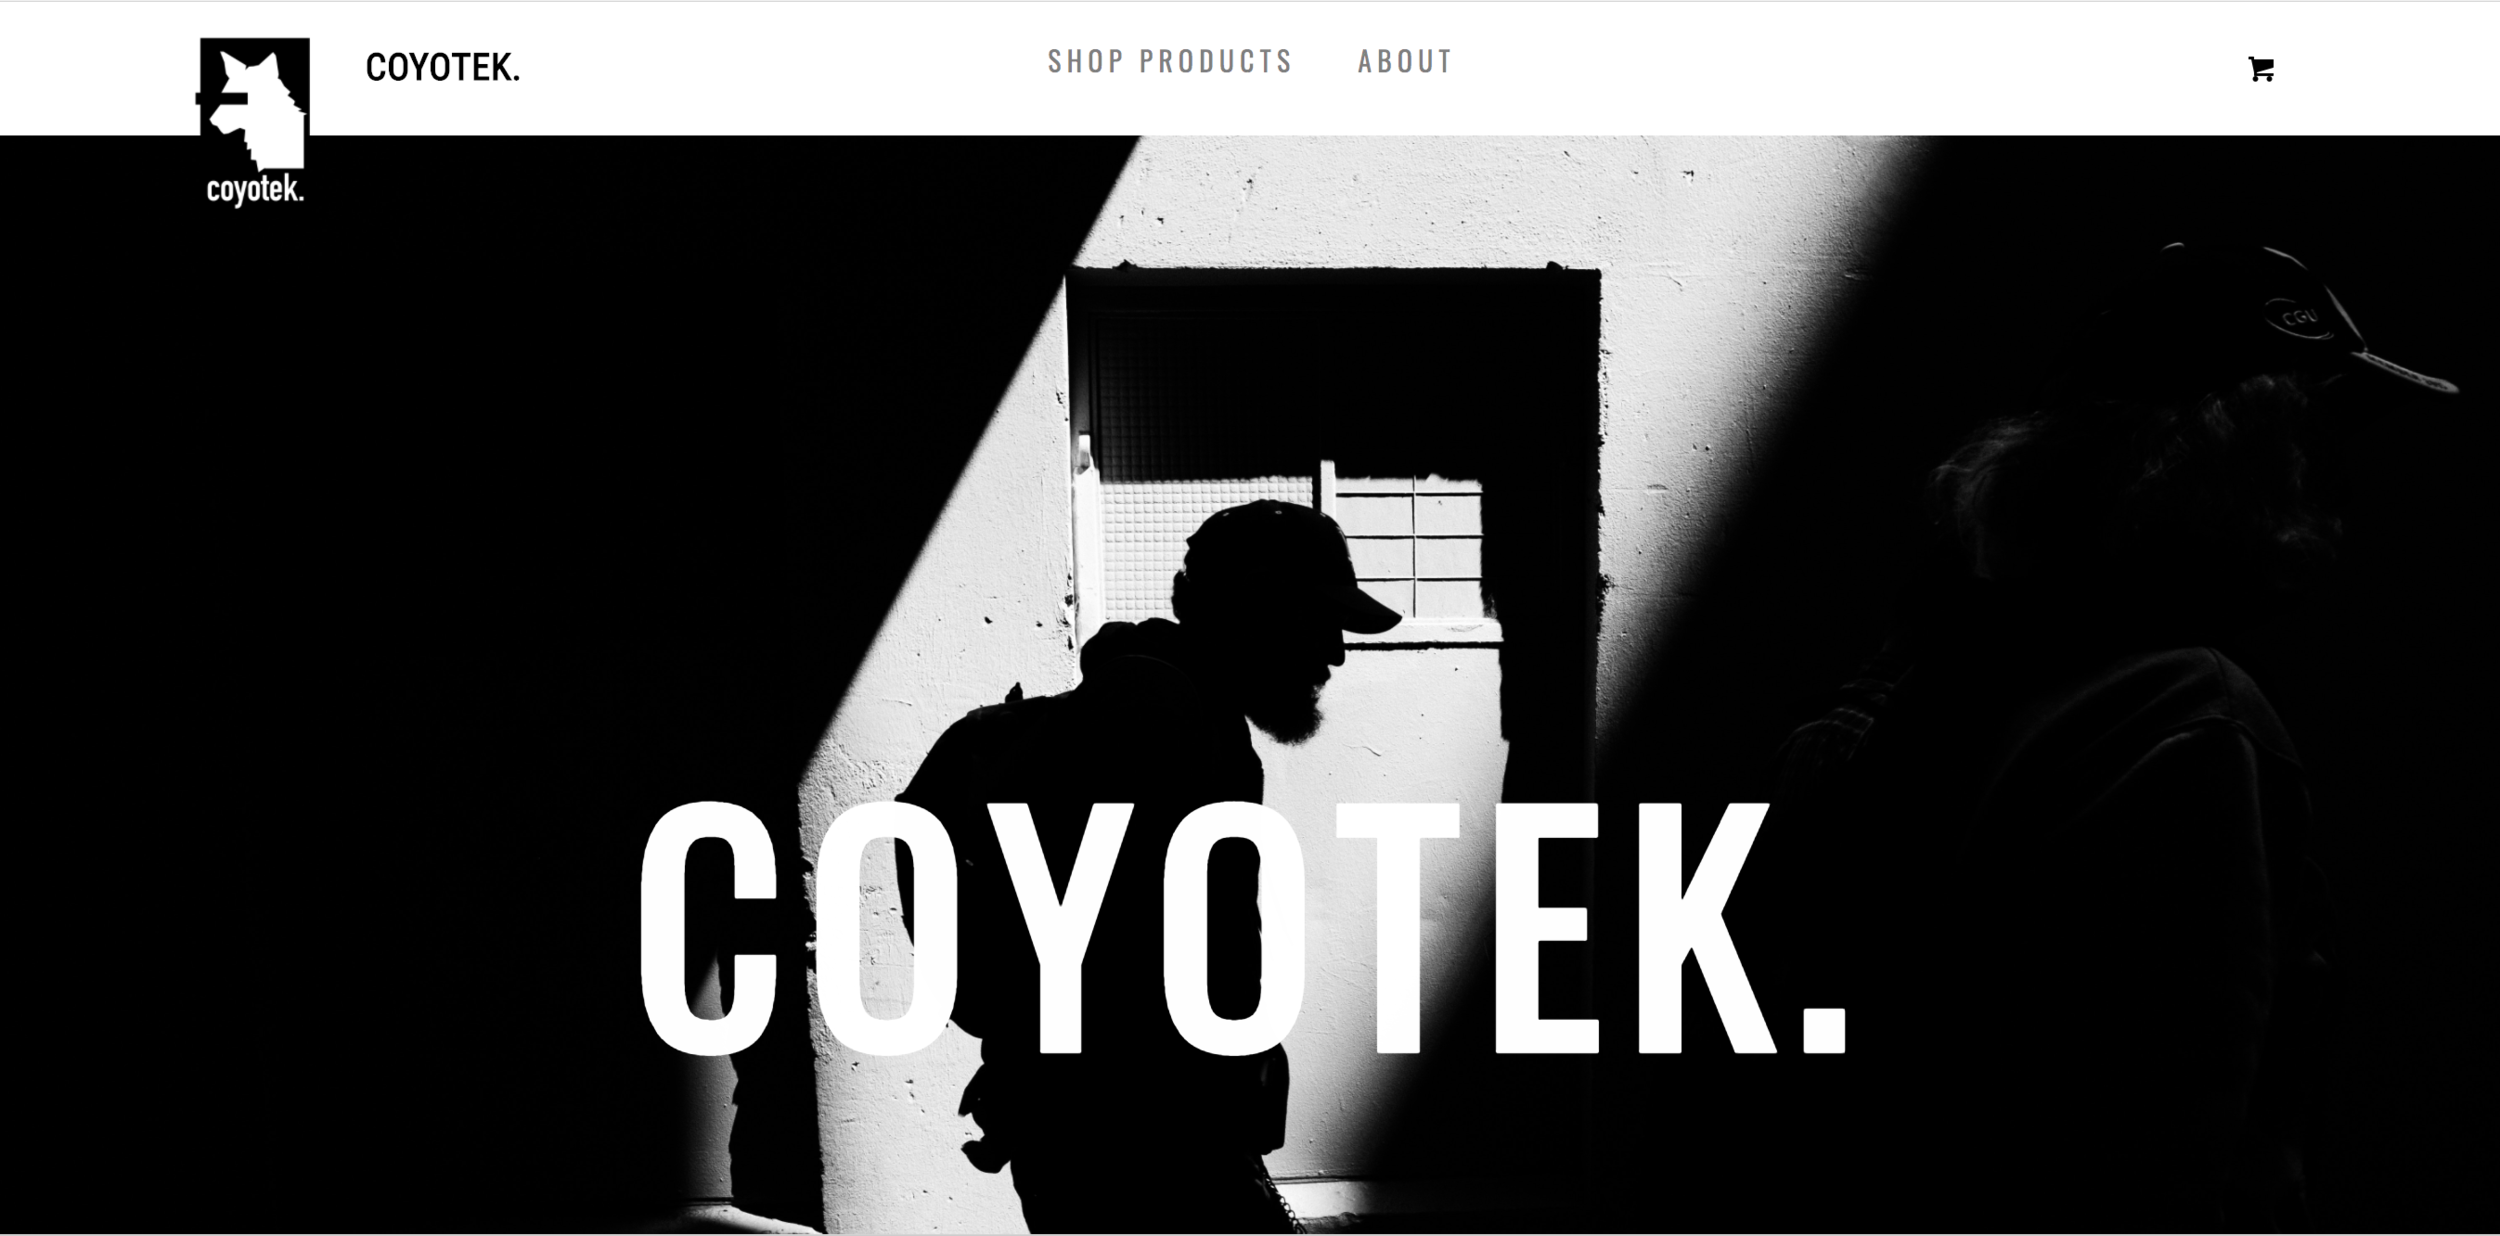 COYOTEK is a speculative web market place used as a tool not only to create things, but to share narratives. We are using product design to materialize the real human stories behind what being a constantly surveilled immigrant means. These products are not solving a problem, but their concept is thought to disturb how surveillance has been normalized in today's society. COYOTEK is an alternate narrative, a slightly extreme version of our reality born to bring a more human approach to the effects of surveillance on immigrants nowadays.